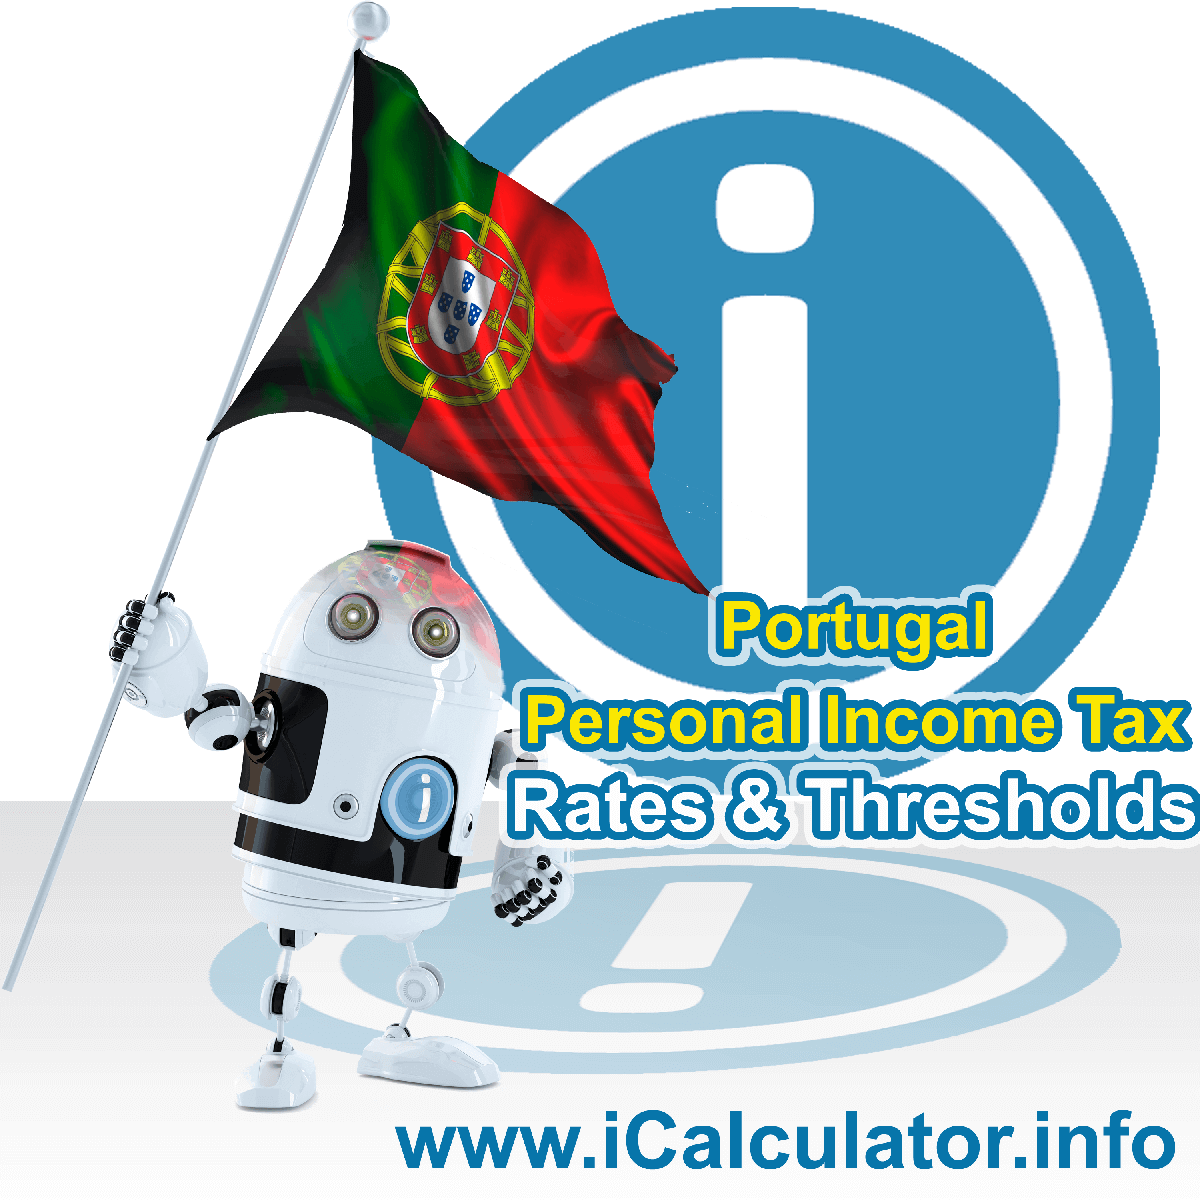 Portugal Personal Income Tax Tables and Corporation Tax Tables for 2021. This image shows the Portugal flag and information relating to the tax tables for Portugal in 2021 that are used within the Portugal Tax Calculator